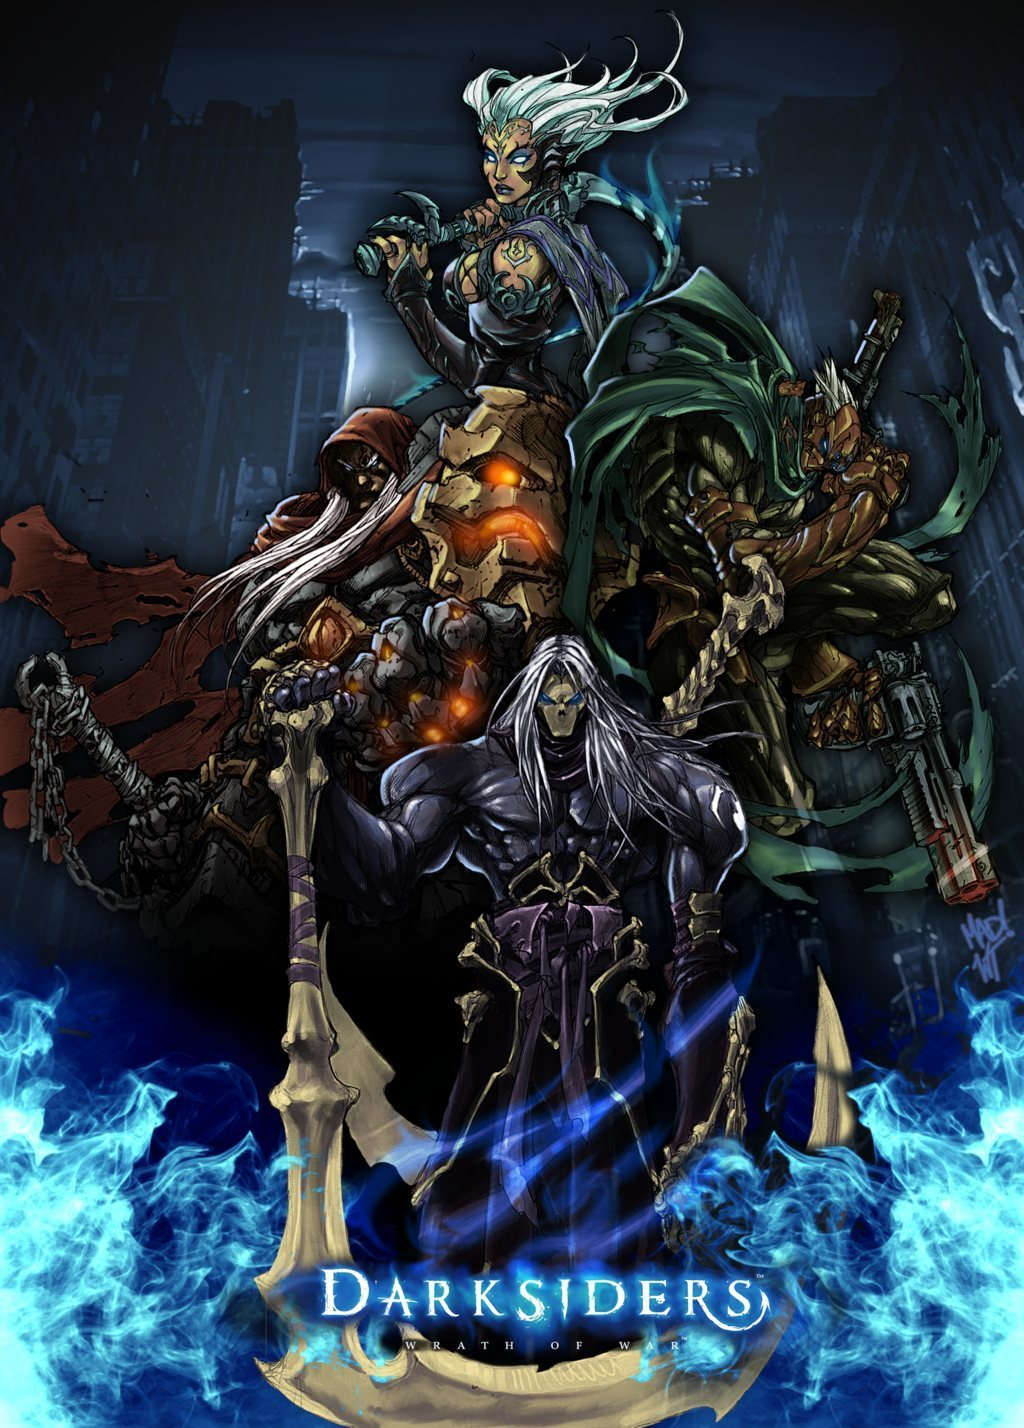 Darksiders famine and pestilence